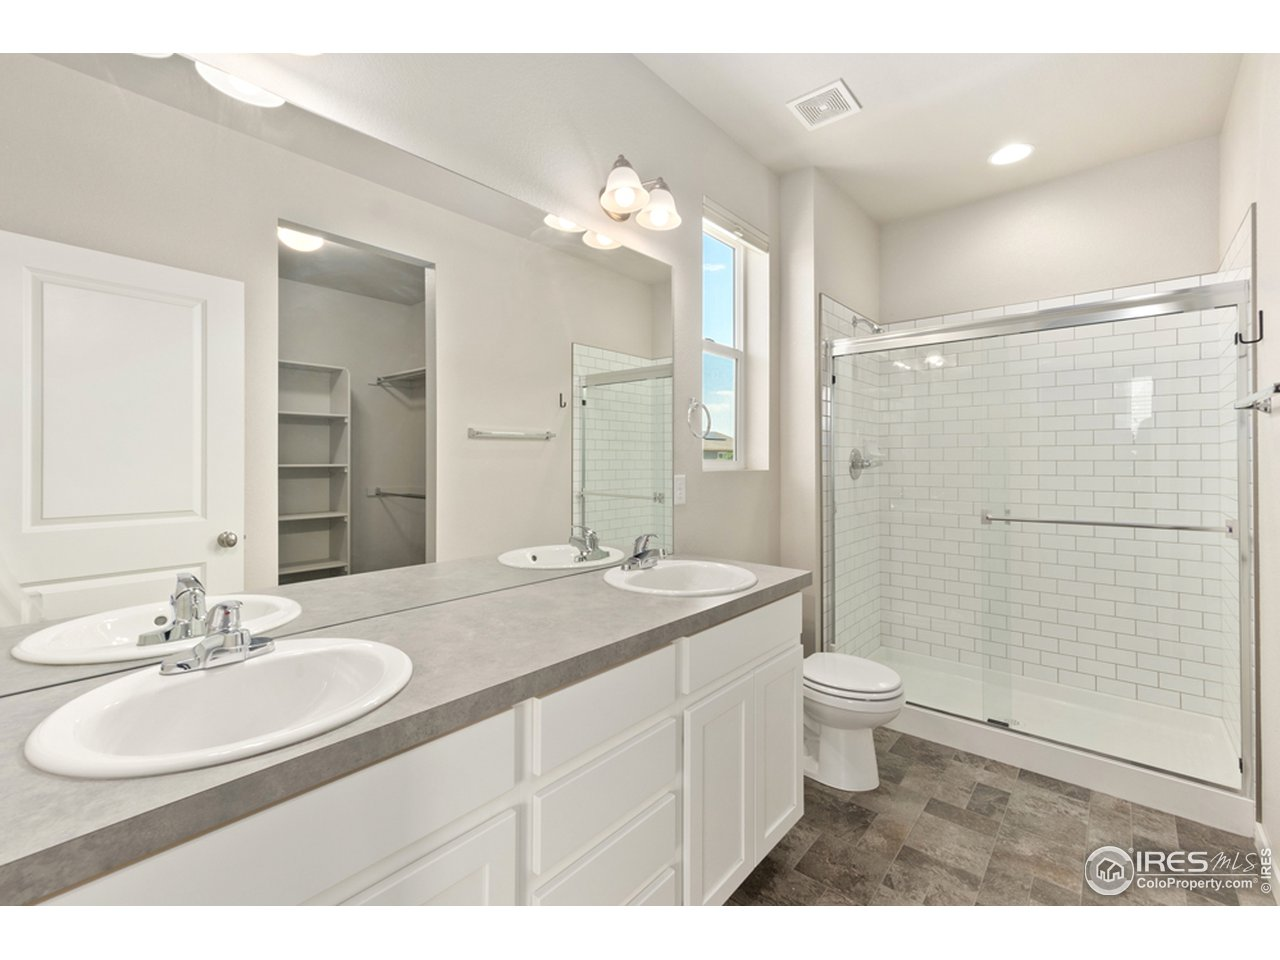 Four piece primary bathroom with walk-in shower, tile surround, and large walk-in closet